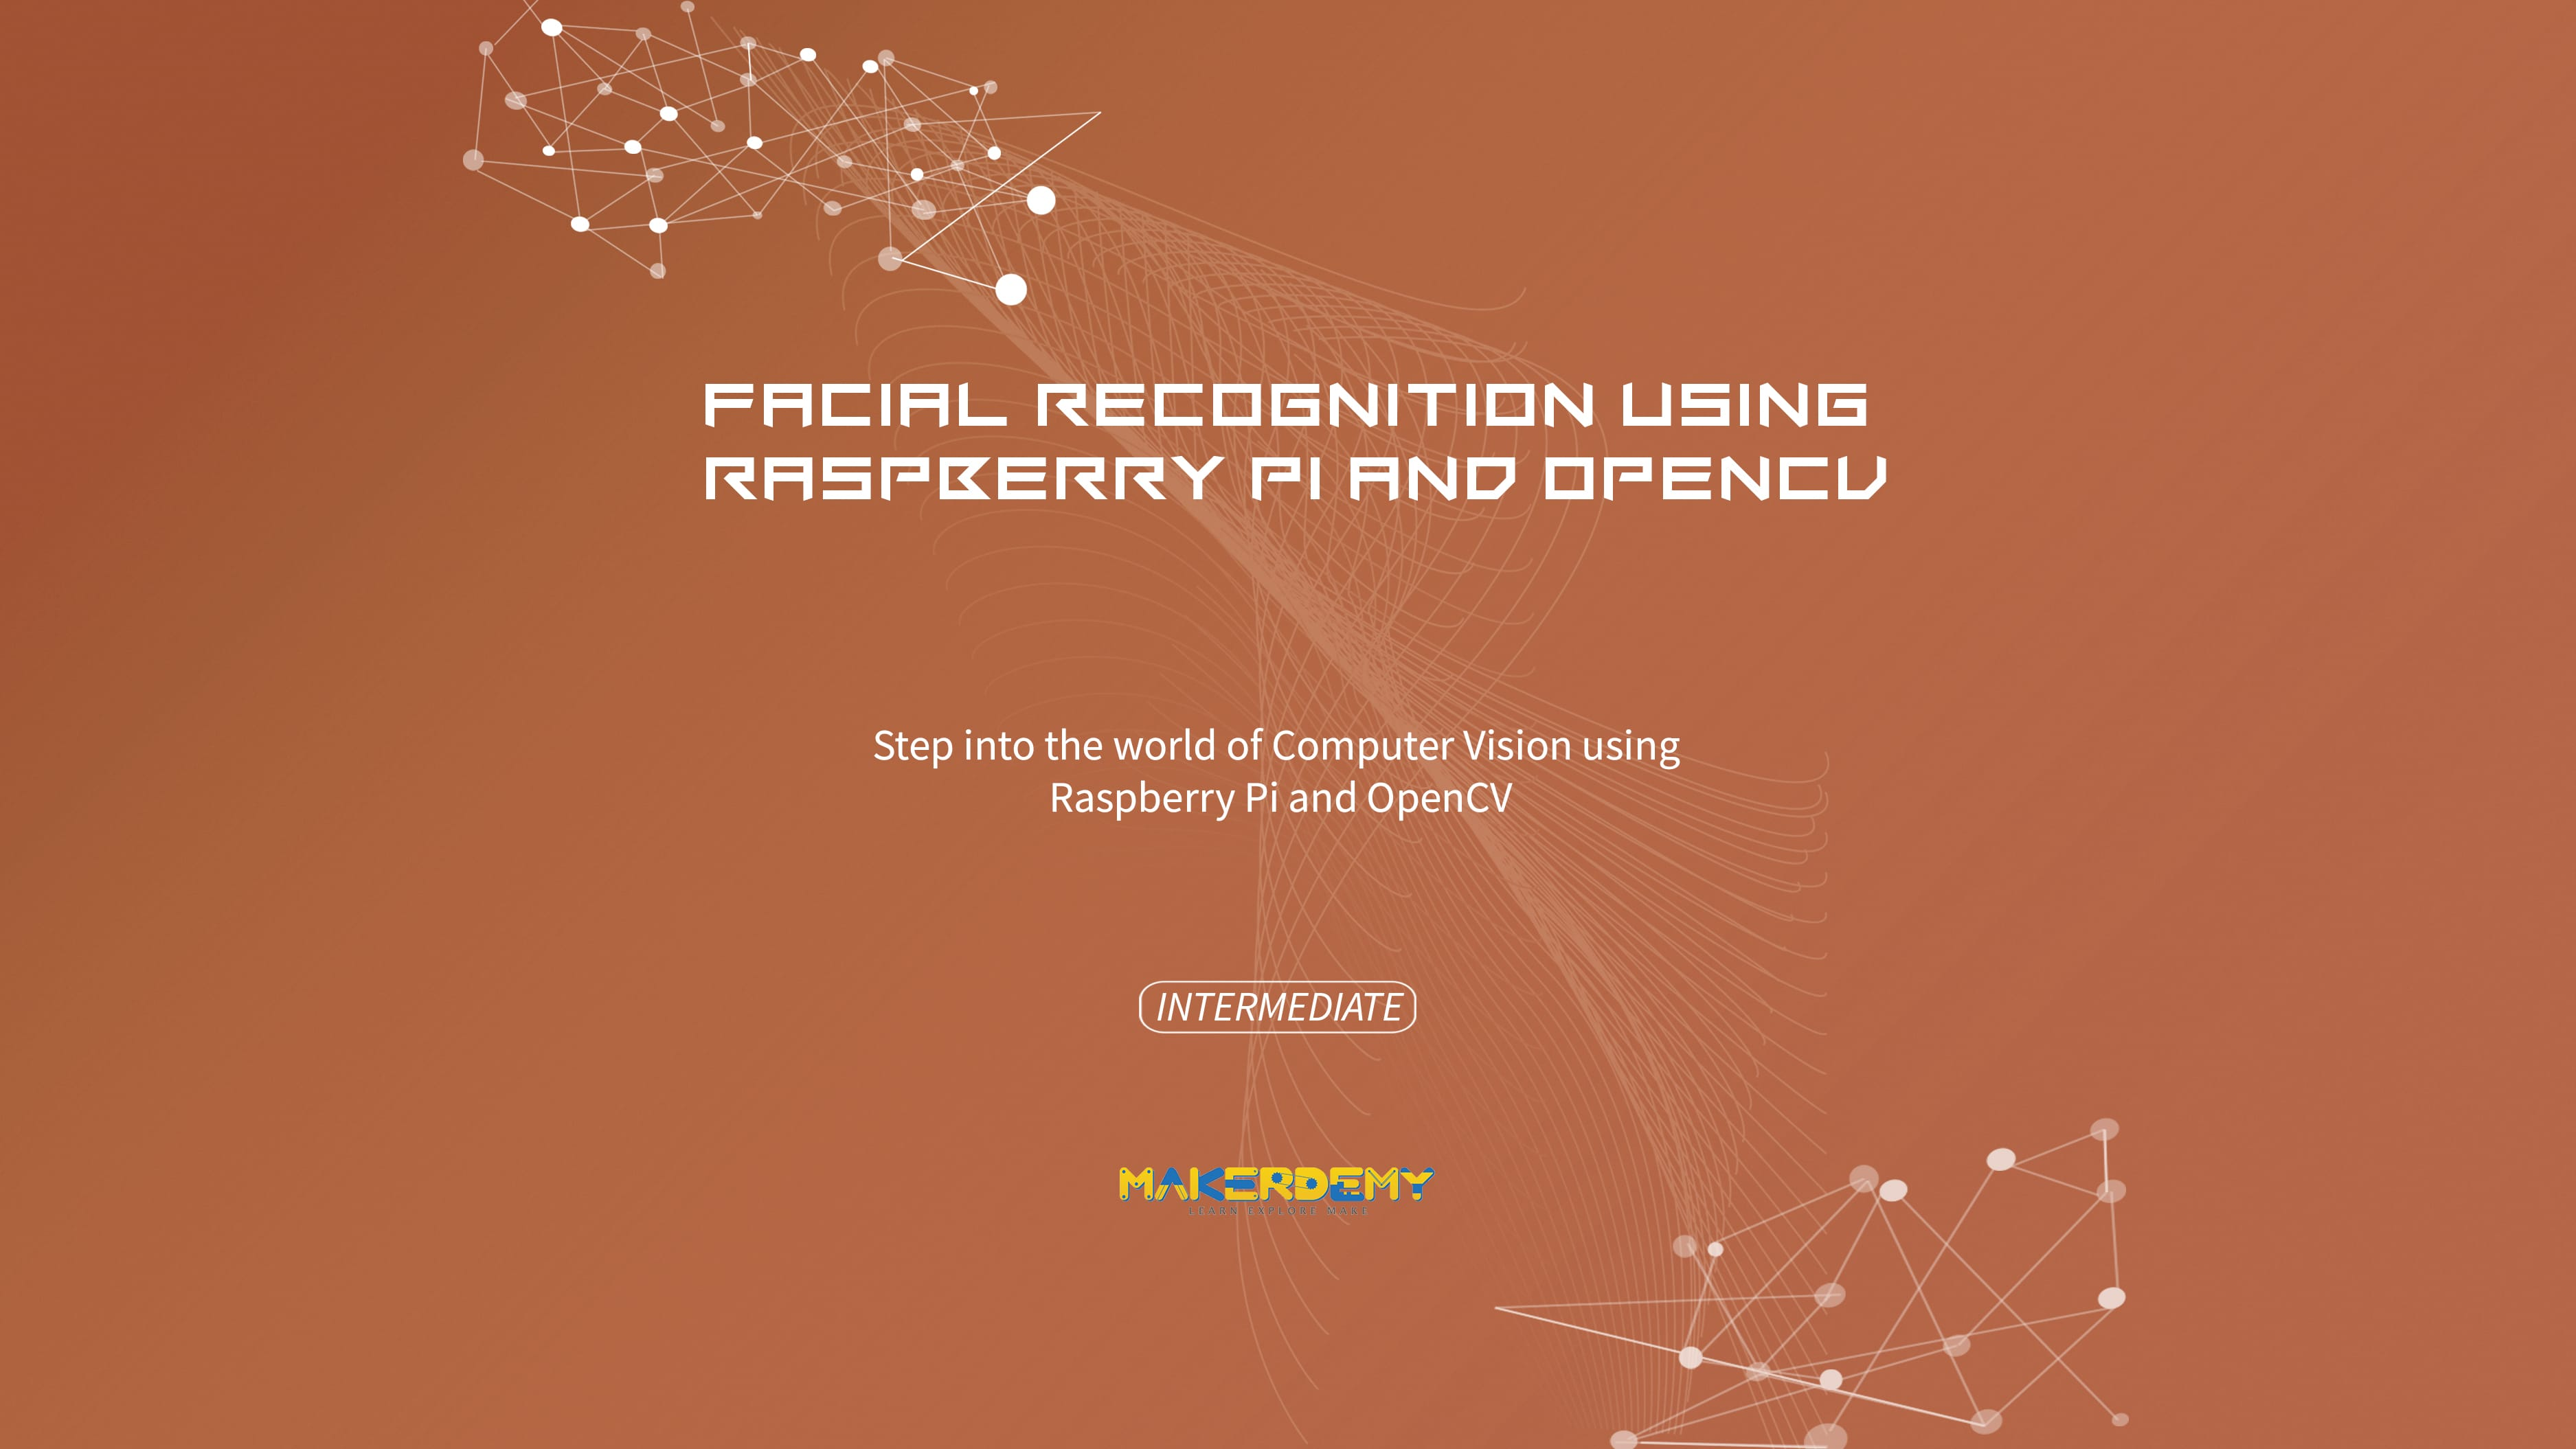 Facial Recognition using Raspberry Pi and OpenCV